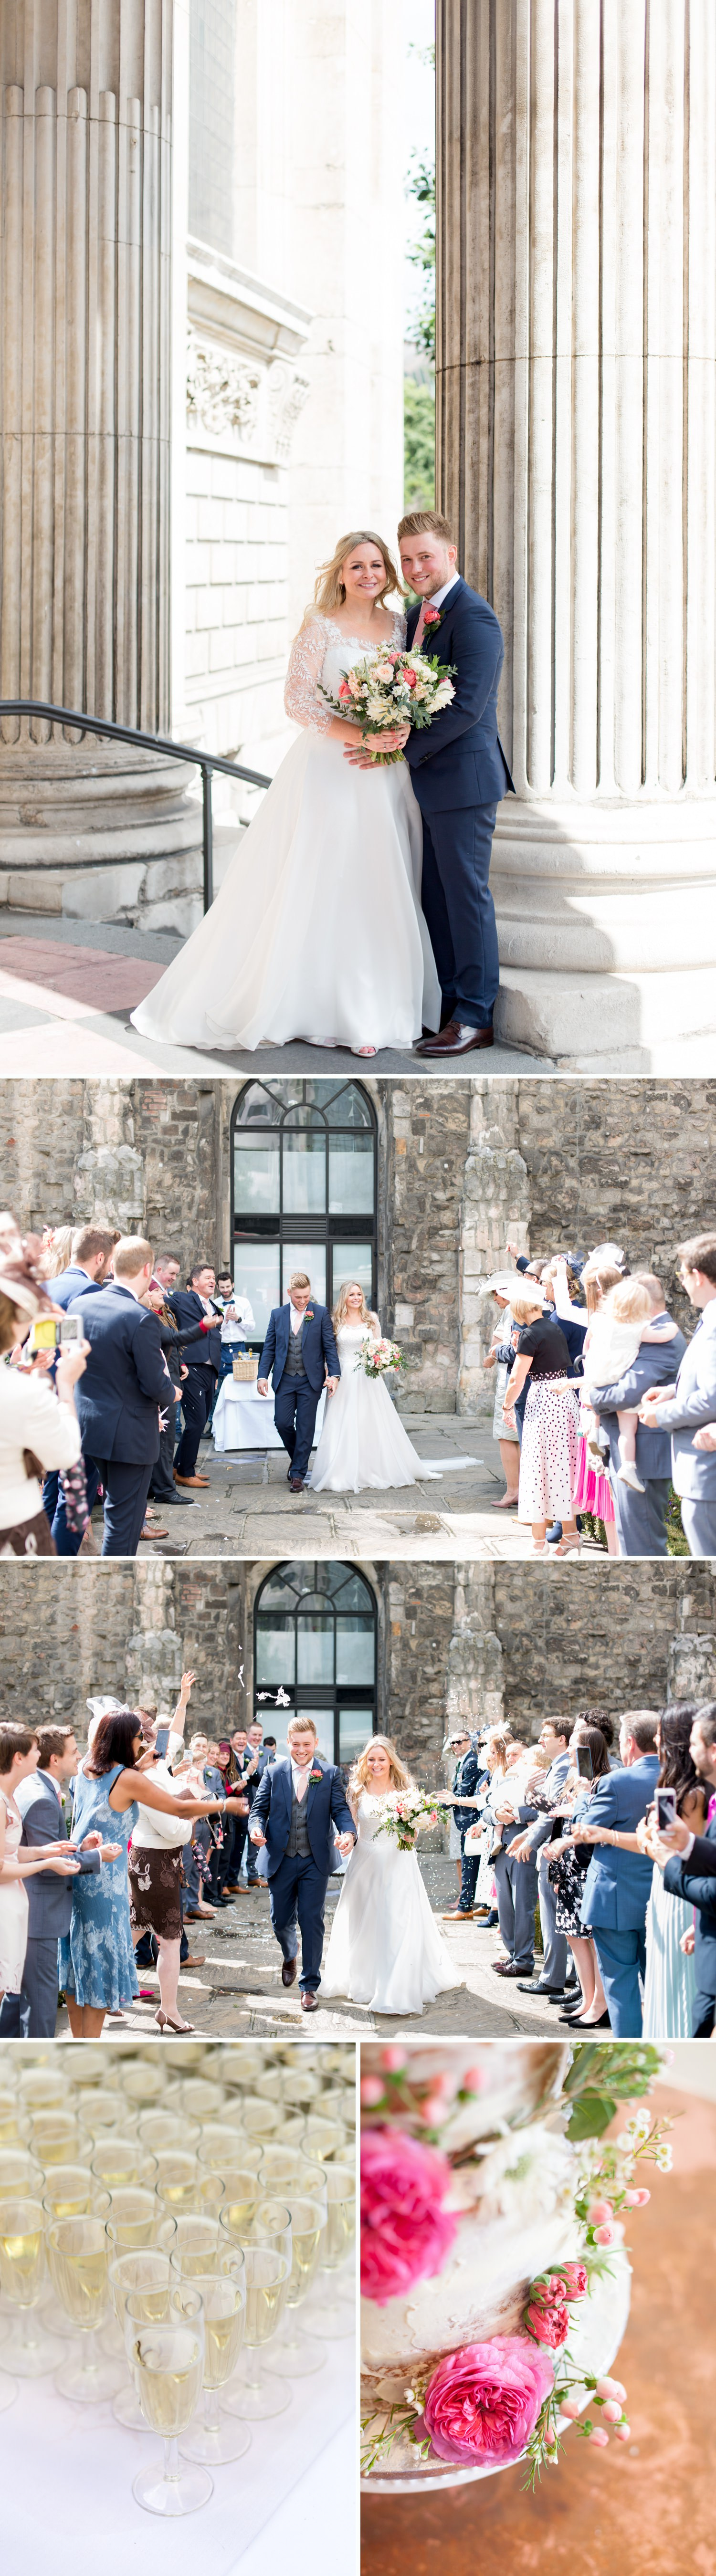 Charlotte & Adam's St. Paul's Cathedral wedding - guests throw confetti over a bride and groom